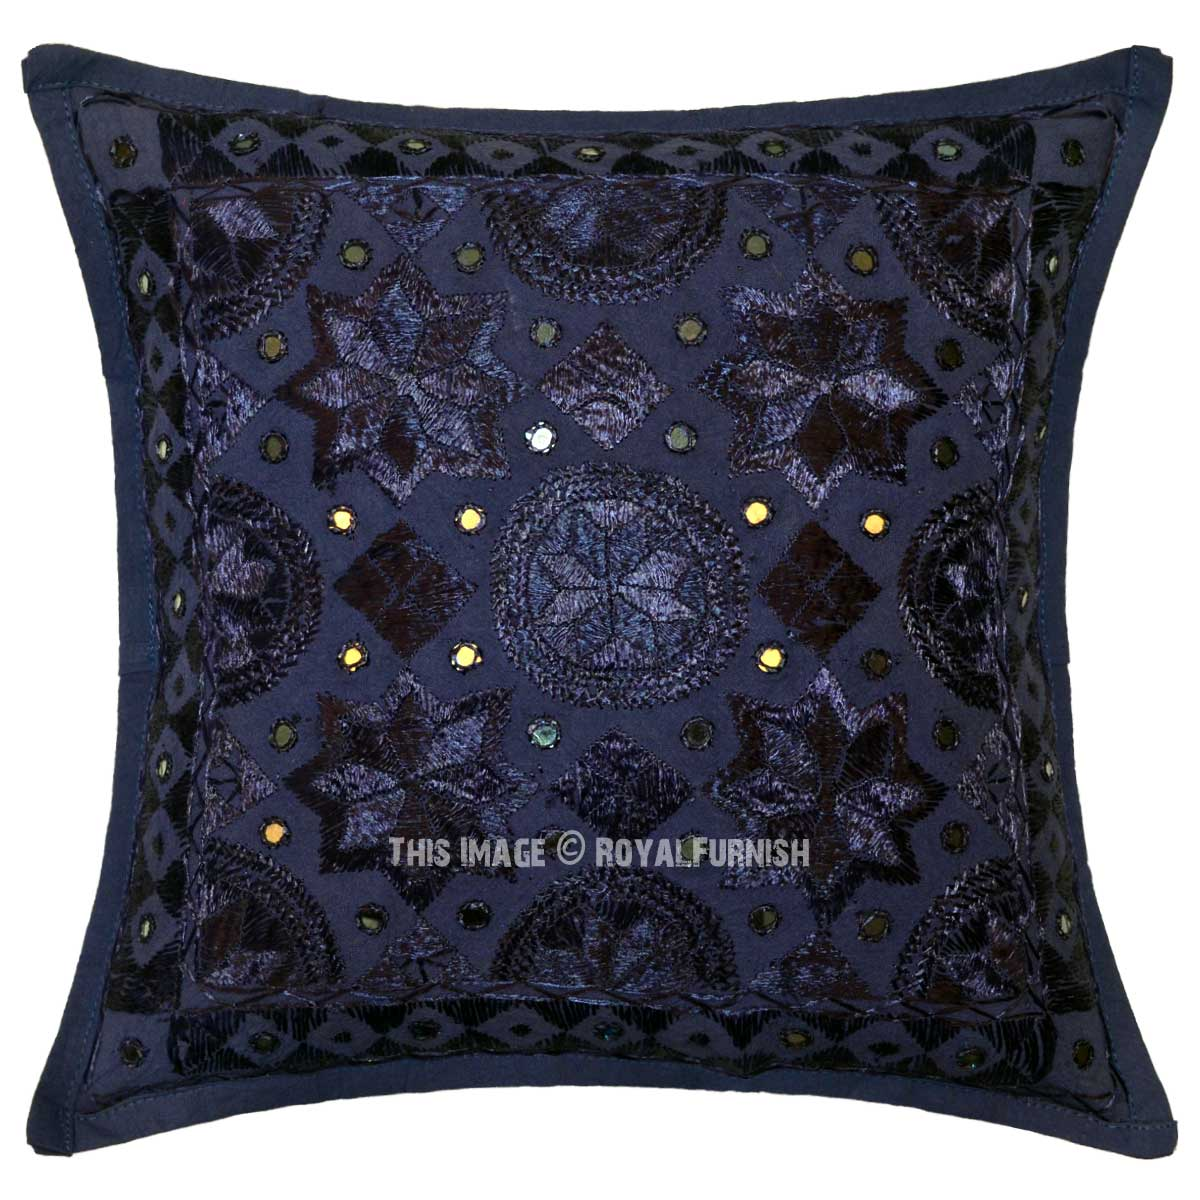 Handmade Decorative Throw Pillows : Blue Decorative Star Mirrored Unique Handmade Throw Pillow Case 16X16 - RoyalFurnish.com